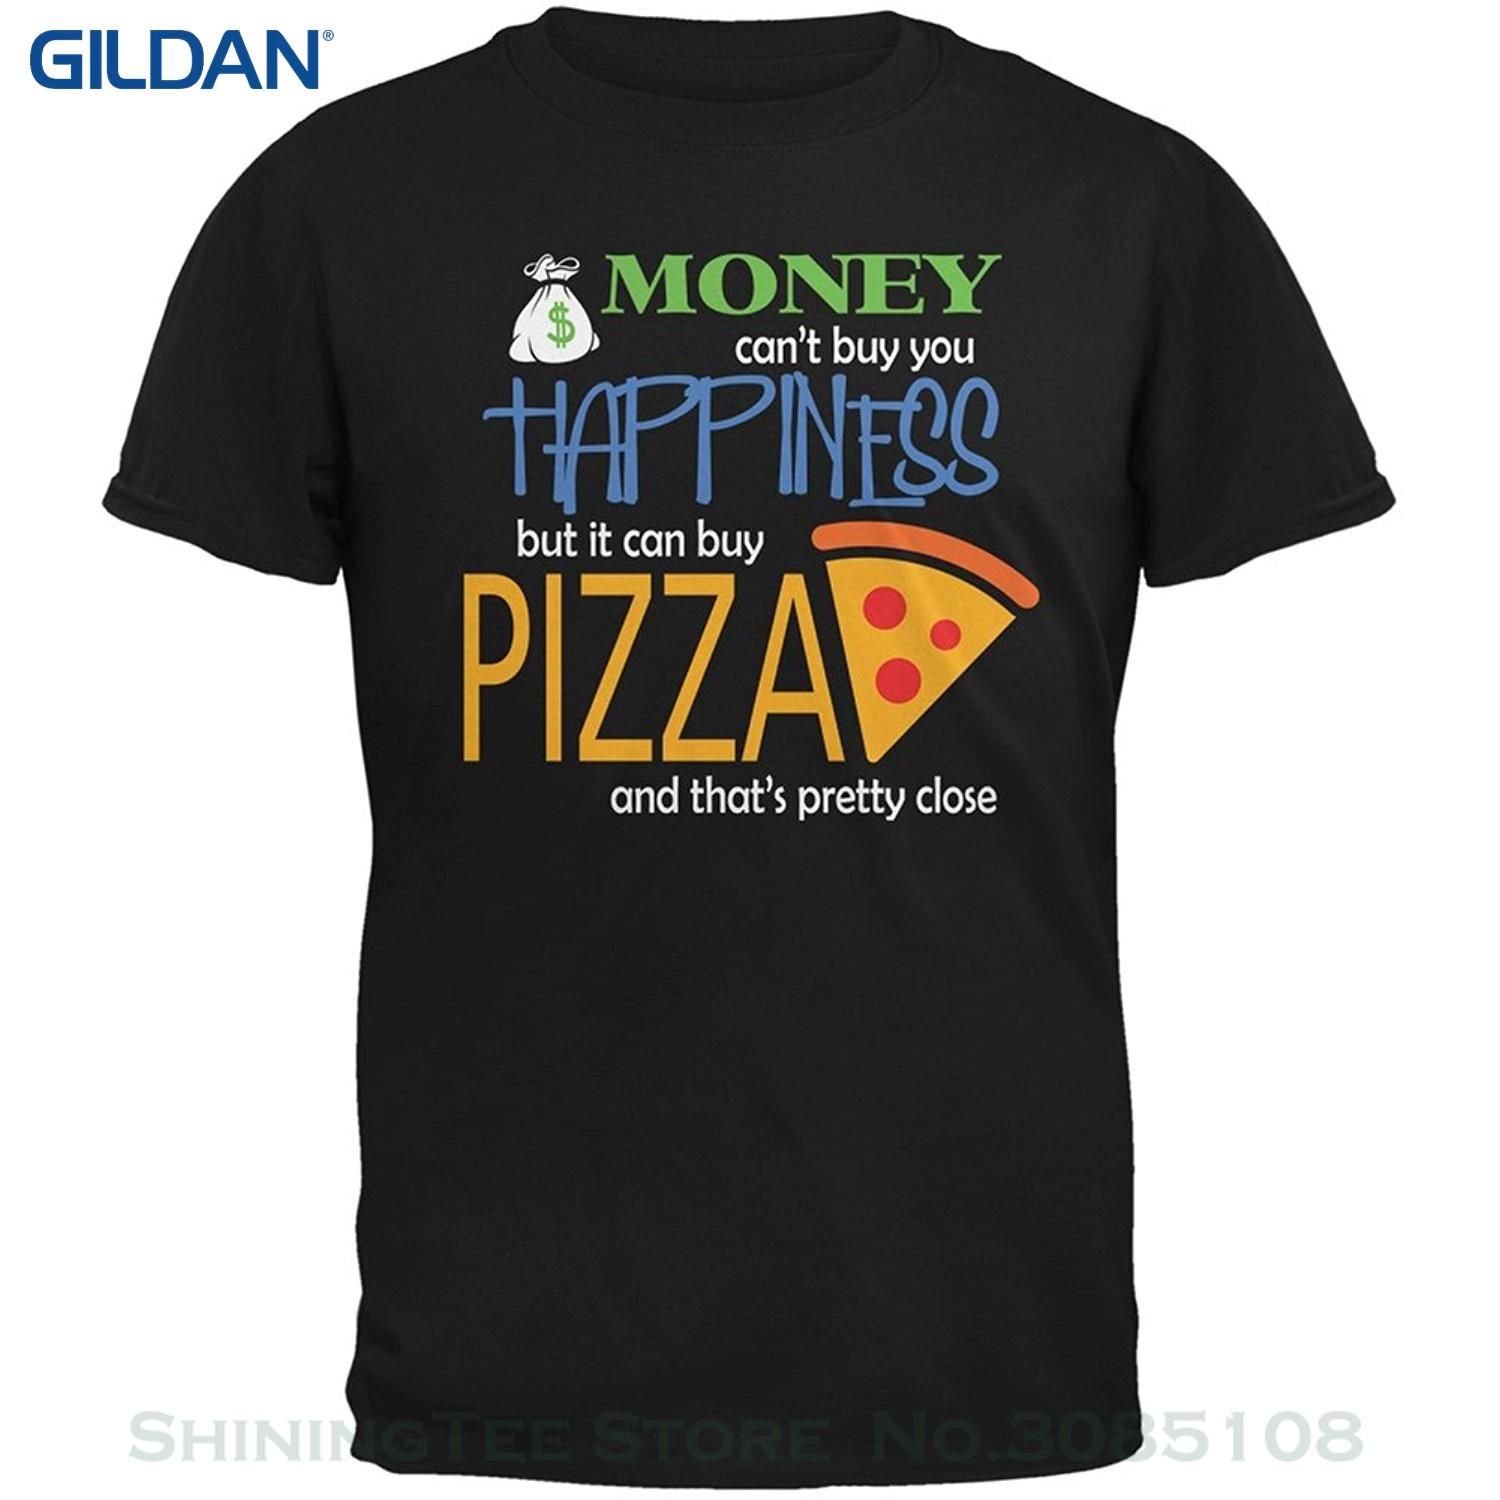 7396acd9 Wholesale Discount Cool T Shirts Designs Best Selling Men Money Happiness  Pizza Funny Black Adult T Shirt Shirts T Shirts T Shirts And Shirts From ...